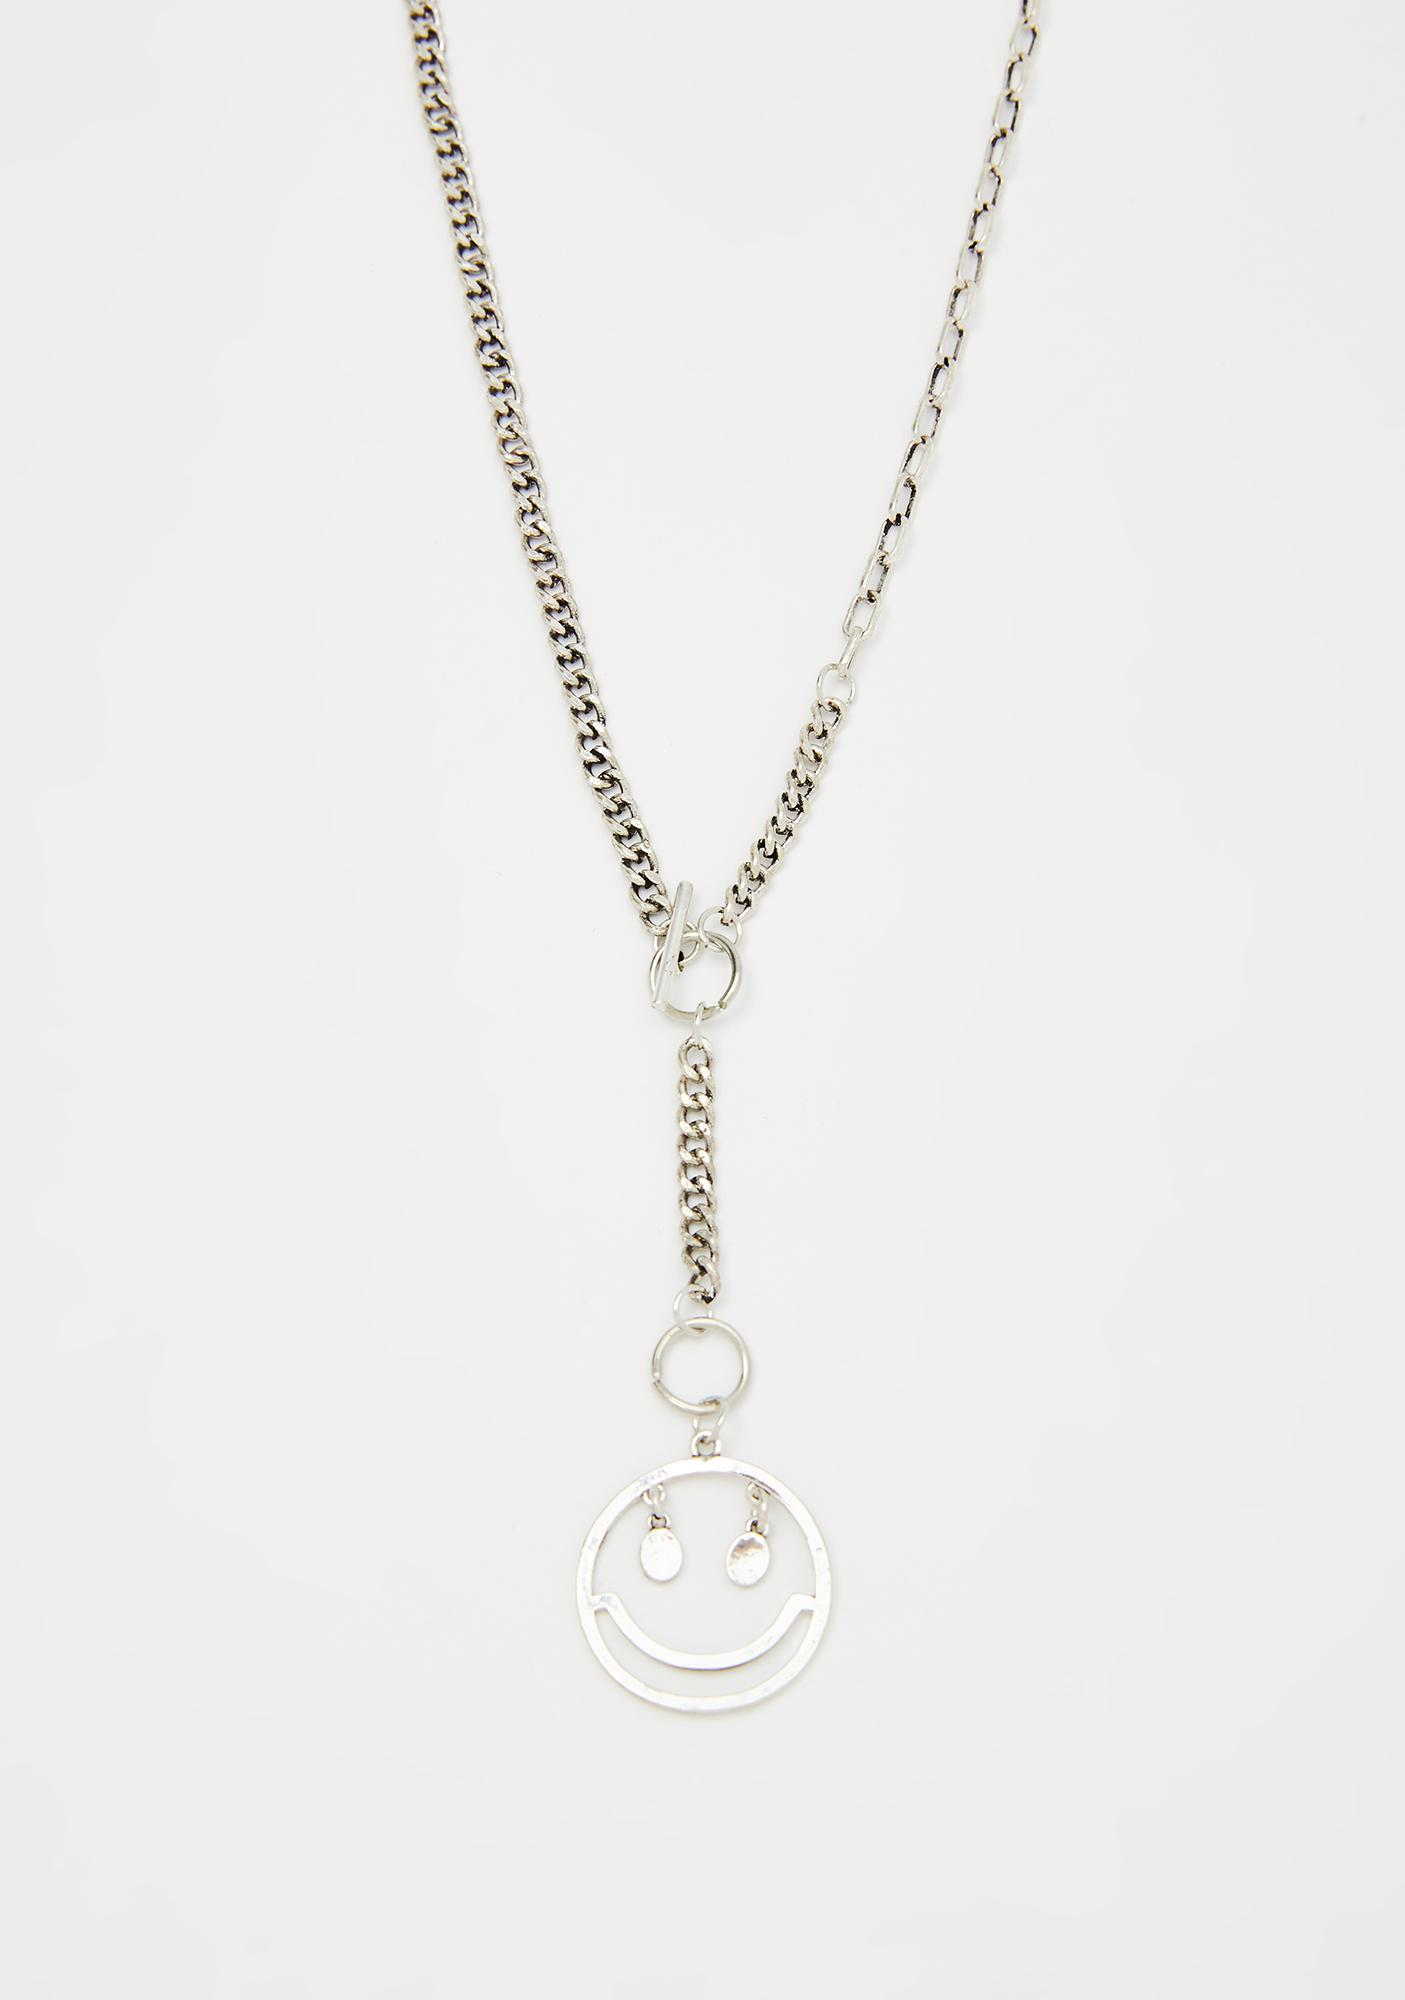 Put On A Happy Face Chain Necklace